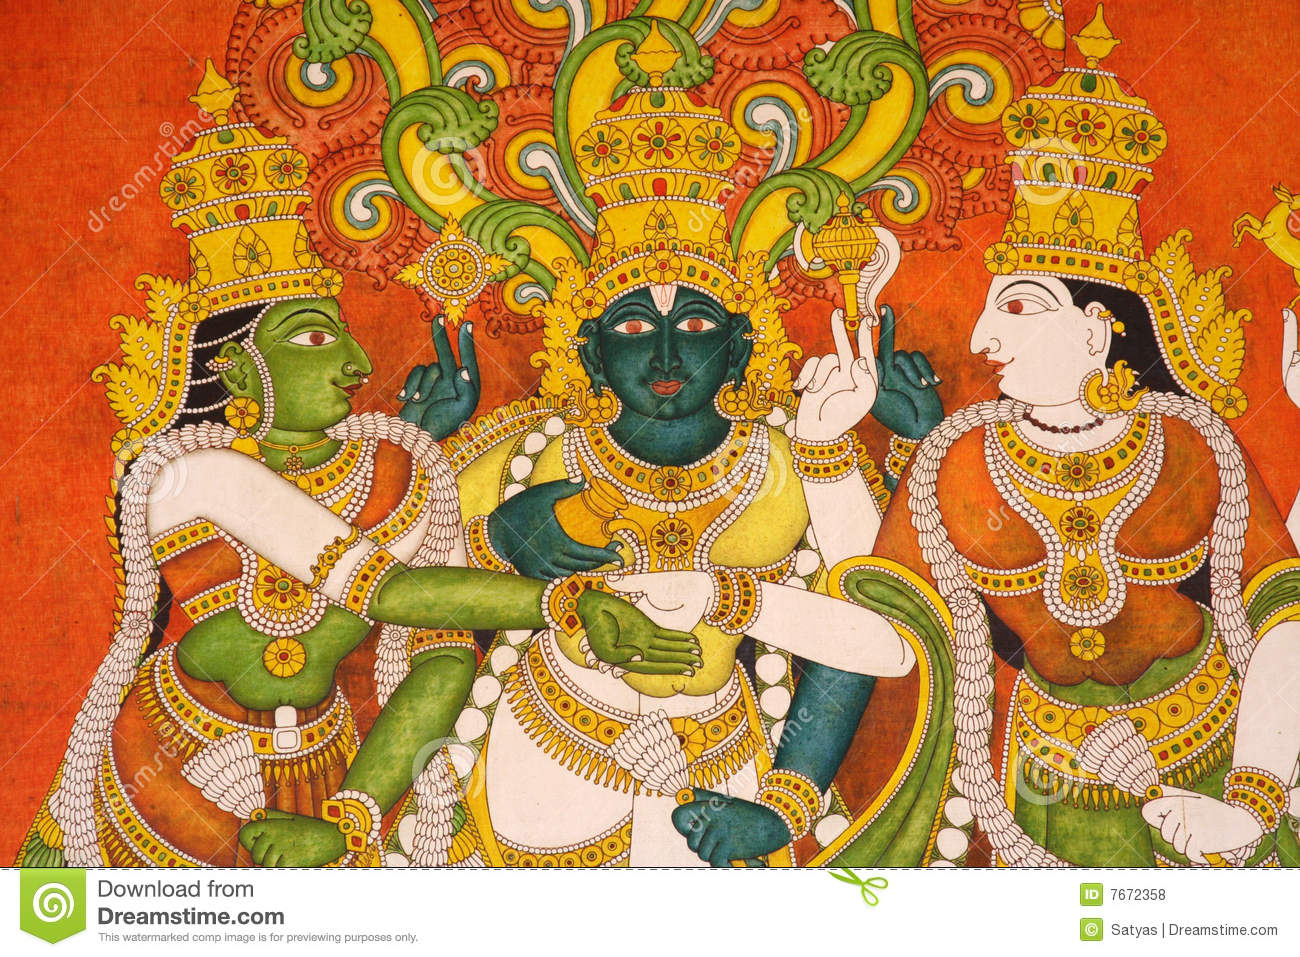 Murals in meenakshi temple india royalty free stock photos for Archaeological monuments in india mural paintings